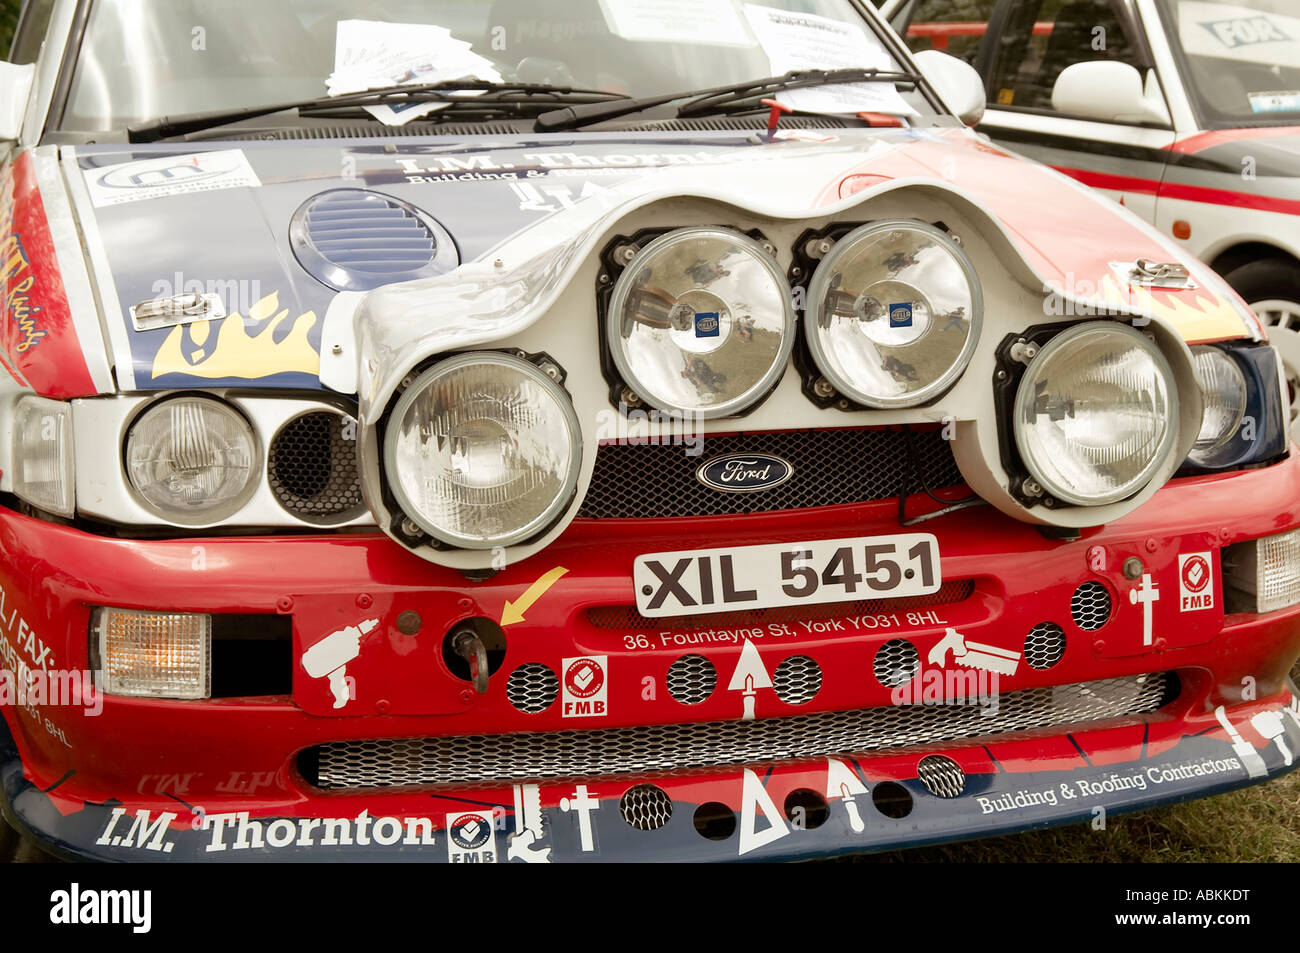 foglight, foglights, lights, light, car, headlights, shine, glared, dazzle,  dazzled, power, powerful, lamp, rally, car, spot, sp